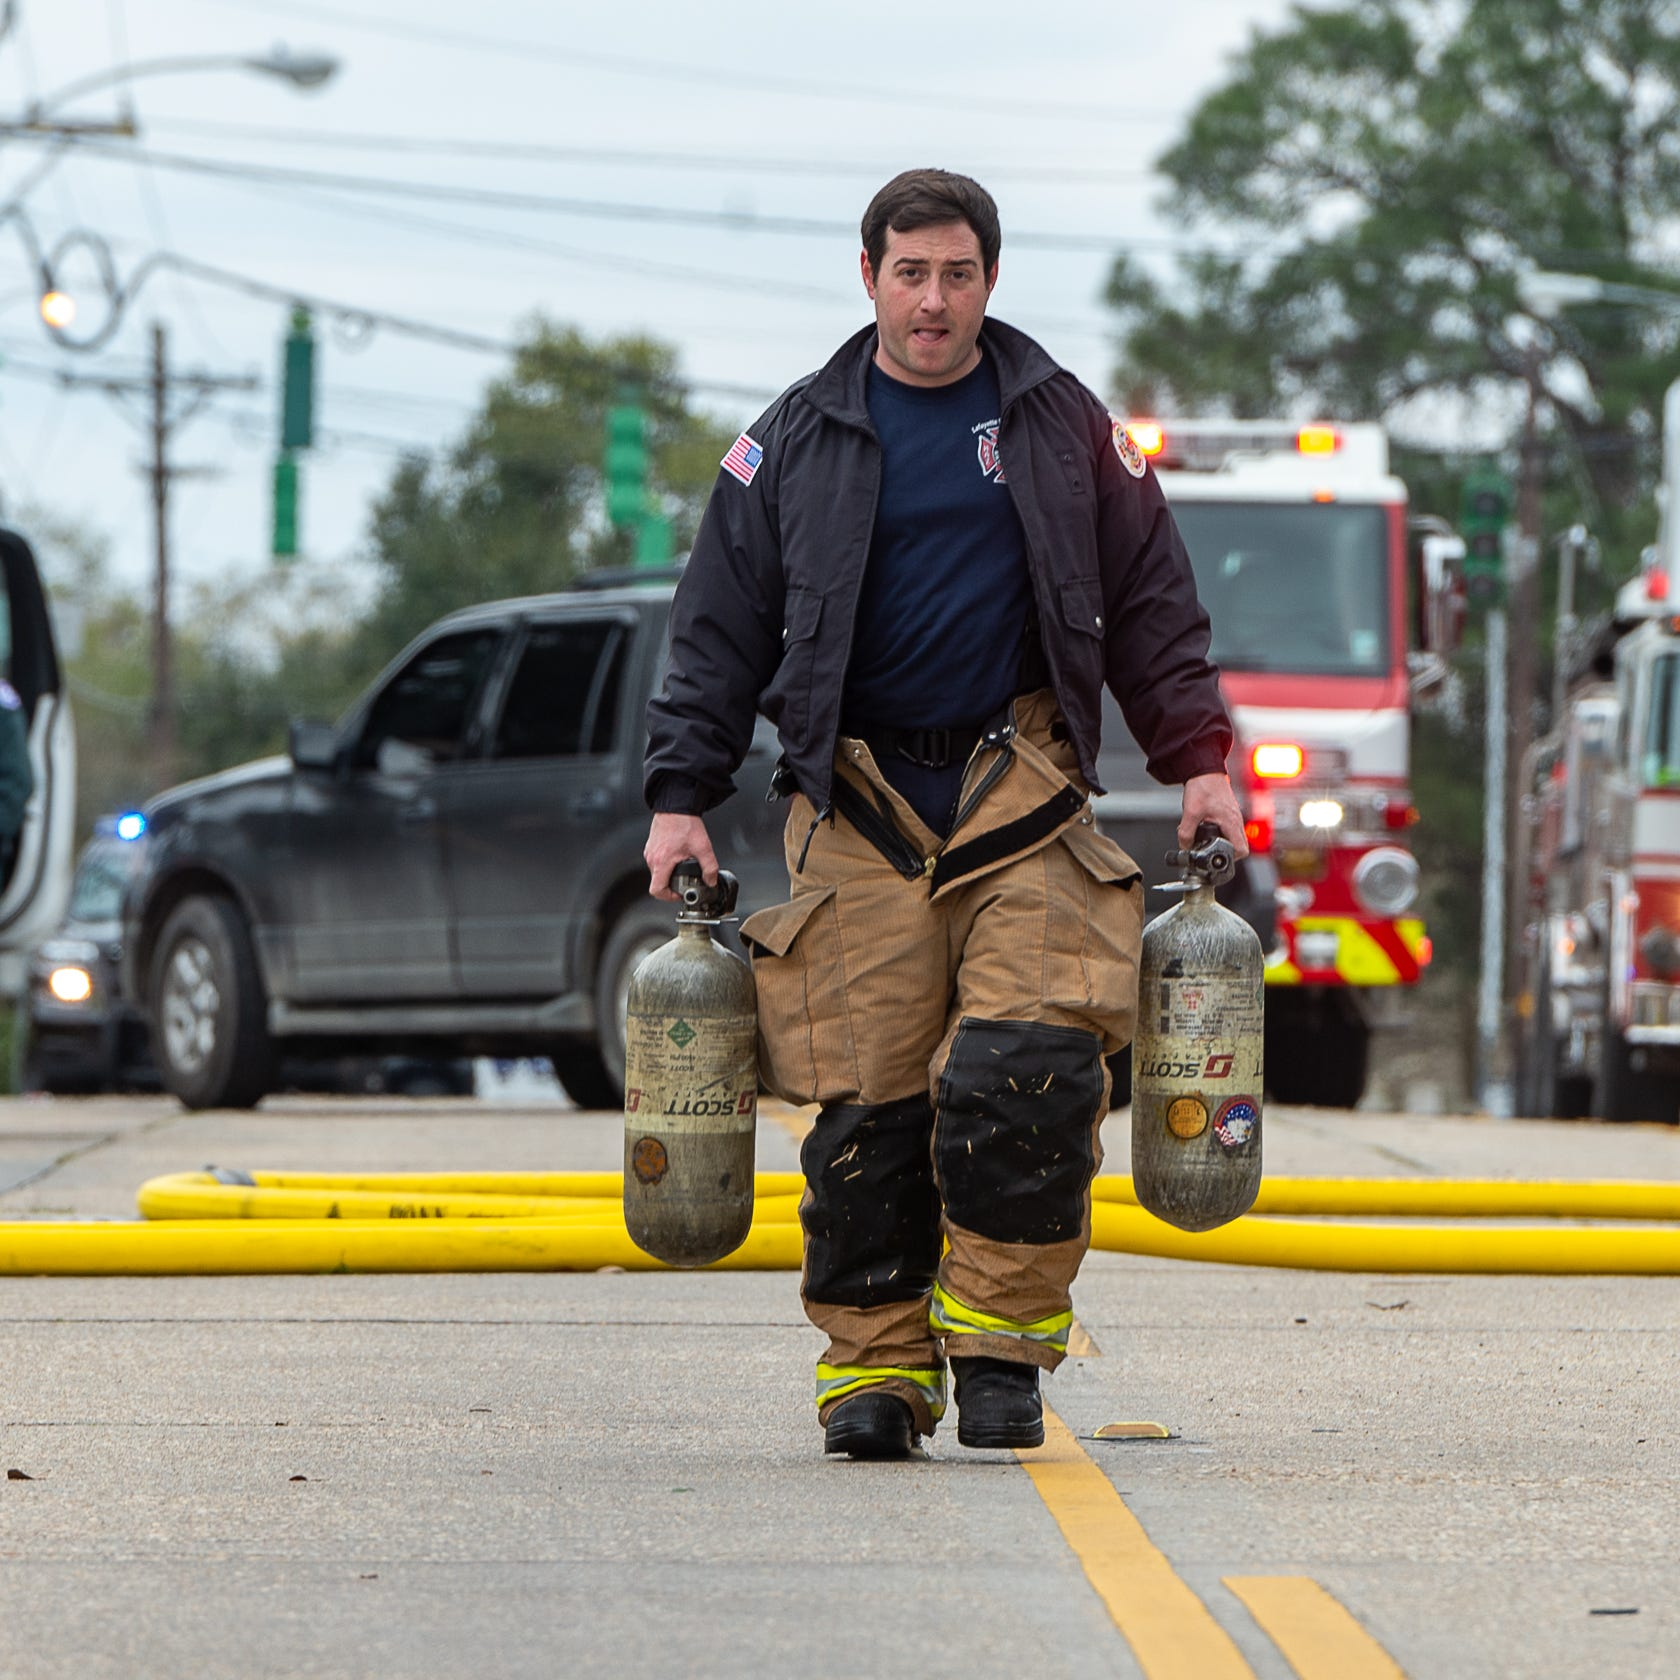 Apartment fire first general alarm in Lafayette in quarter century